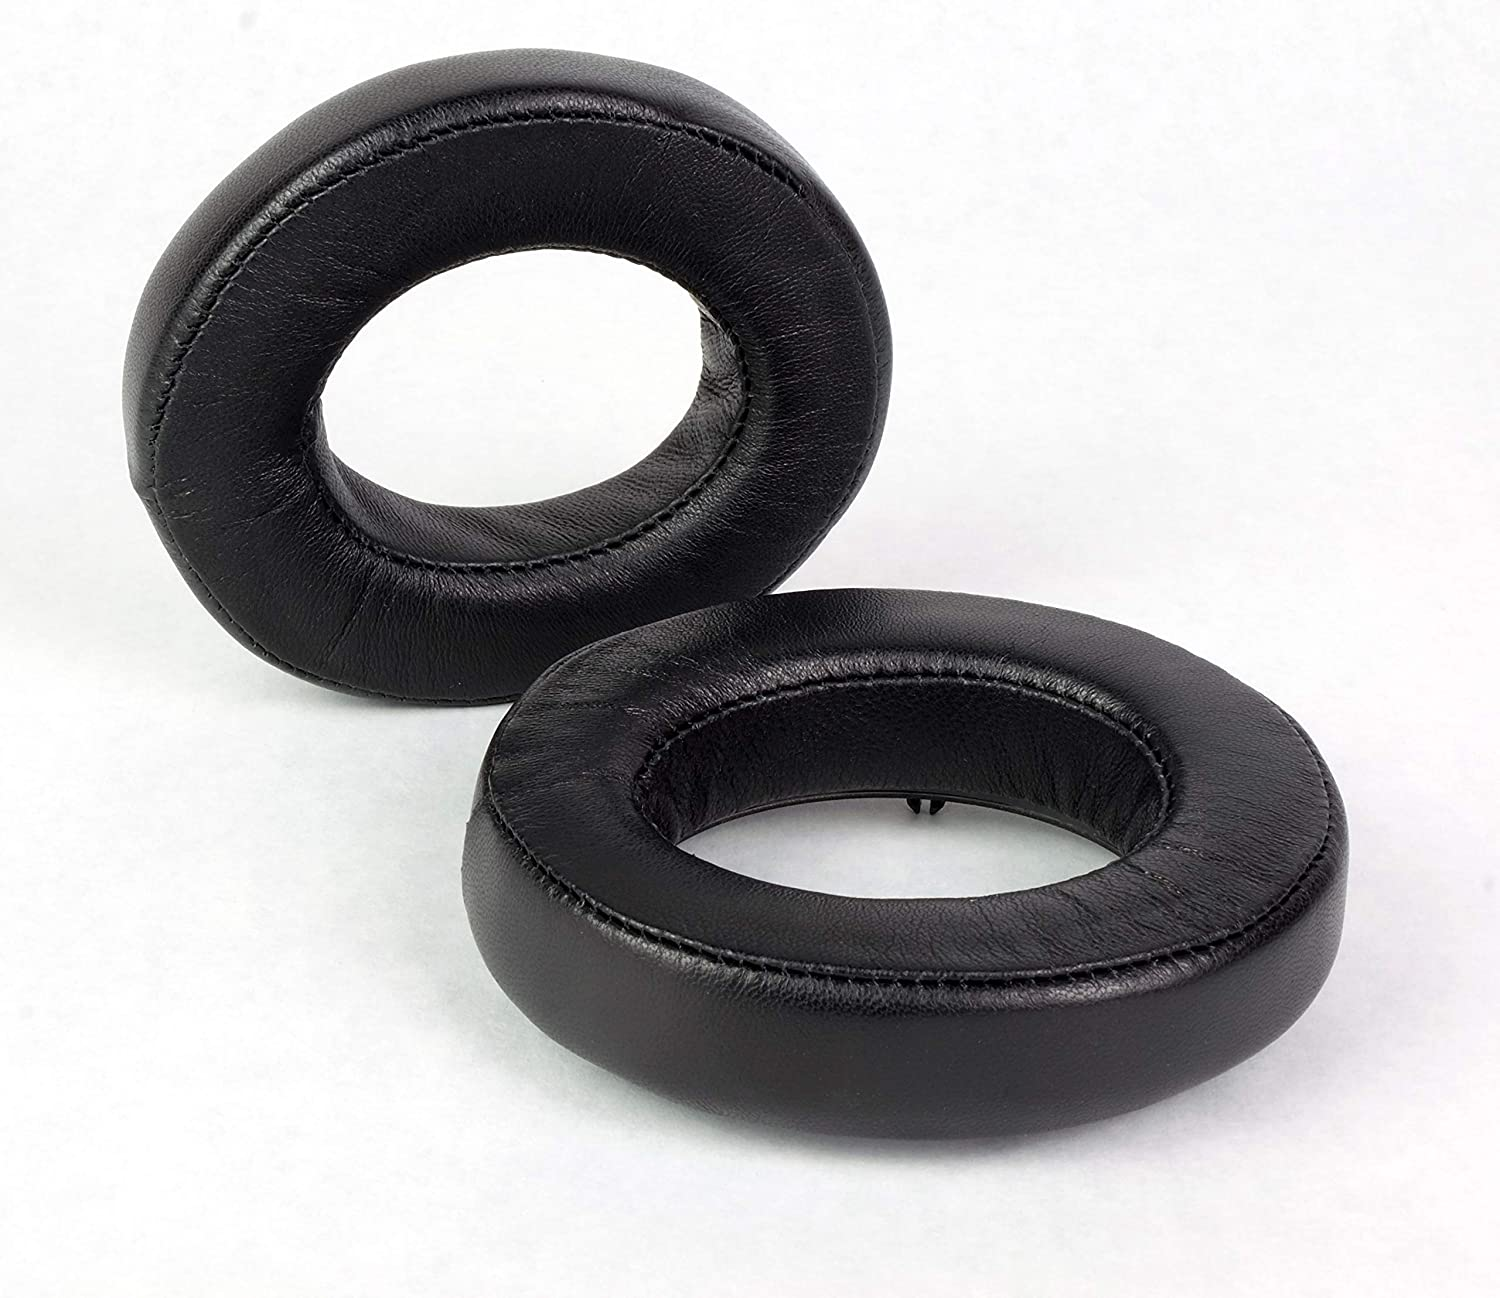 Dekoni Audio Memory Max 86% OFF Foam Replacement Fo Pads Limited time sale Ear Compatible with